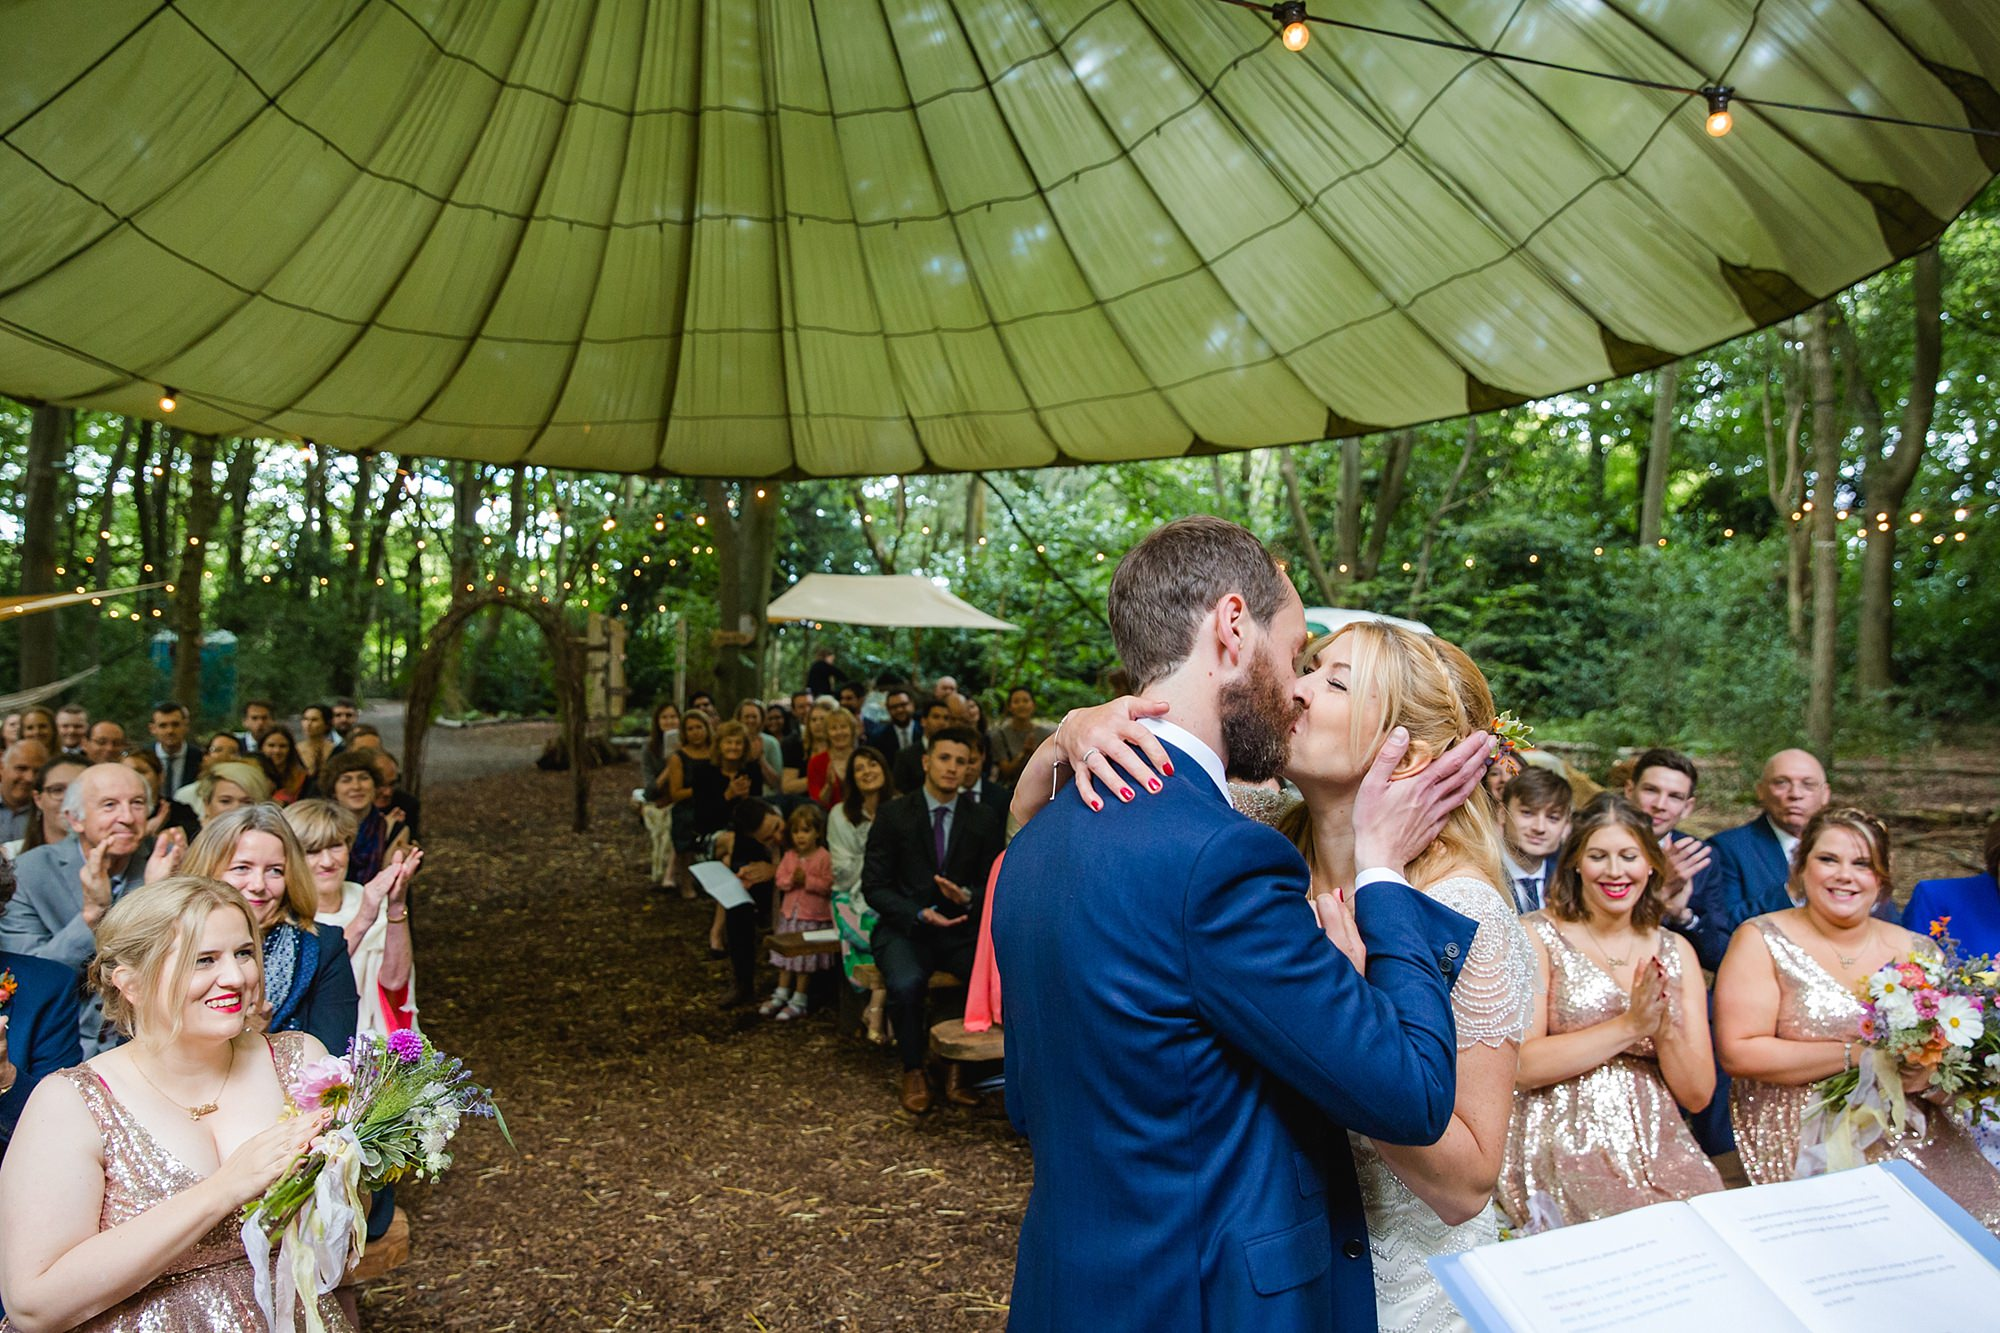 Woodland Weddings Tring bride and groom first kiss